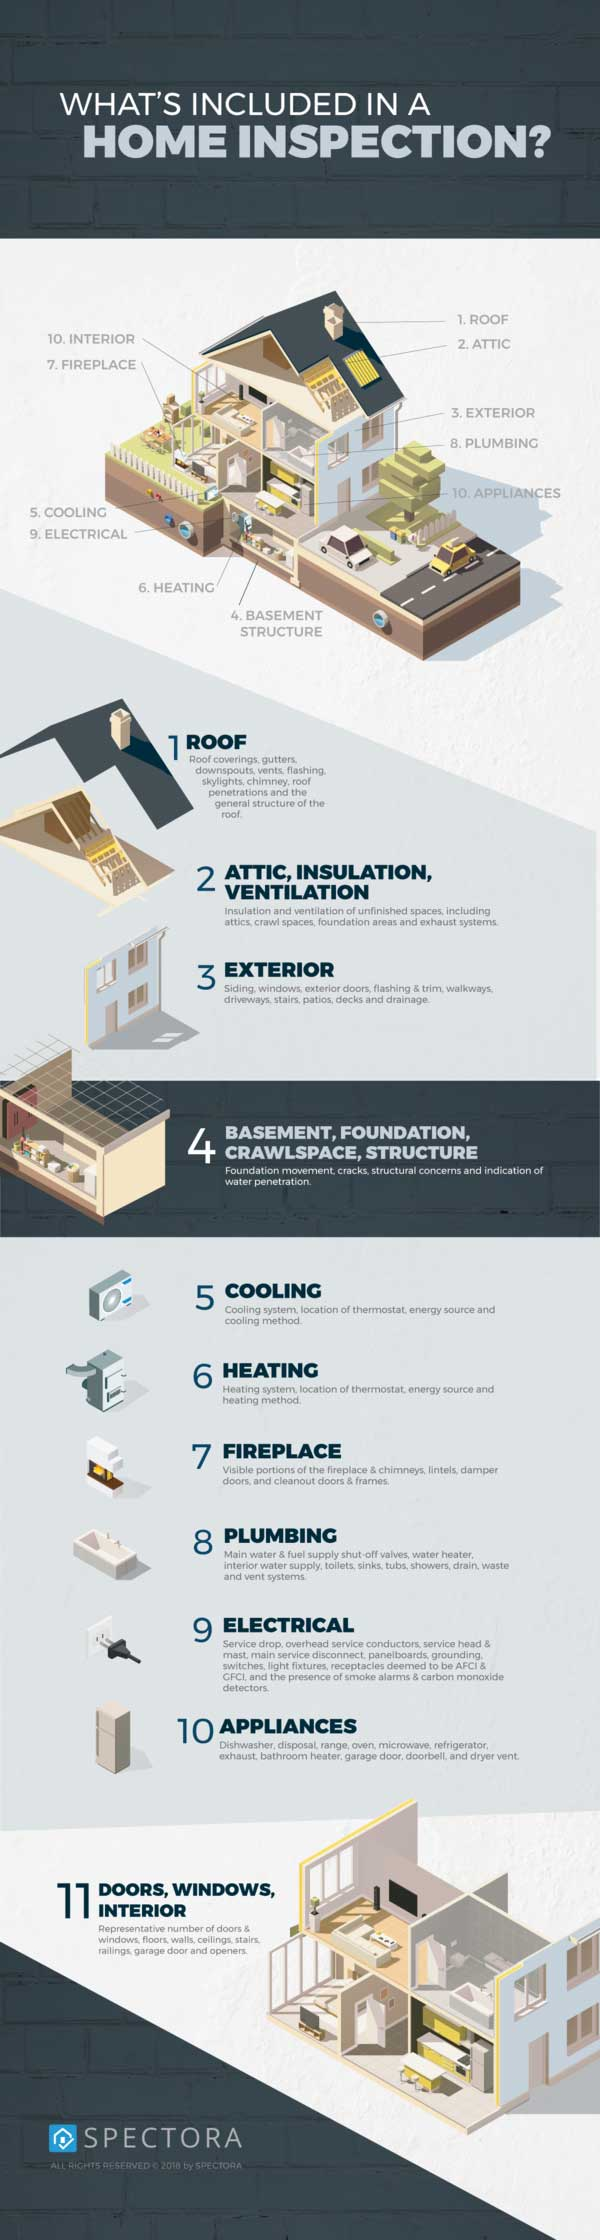 Beights Home Inspection - Central Virginia Home Inspections